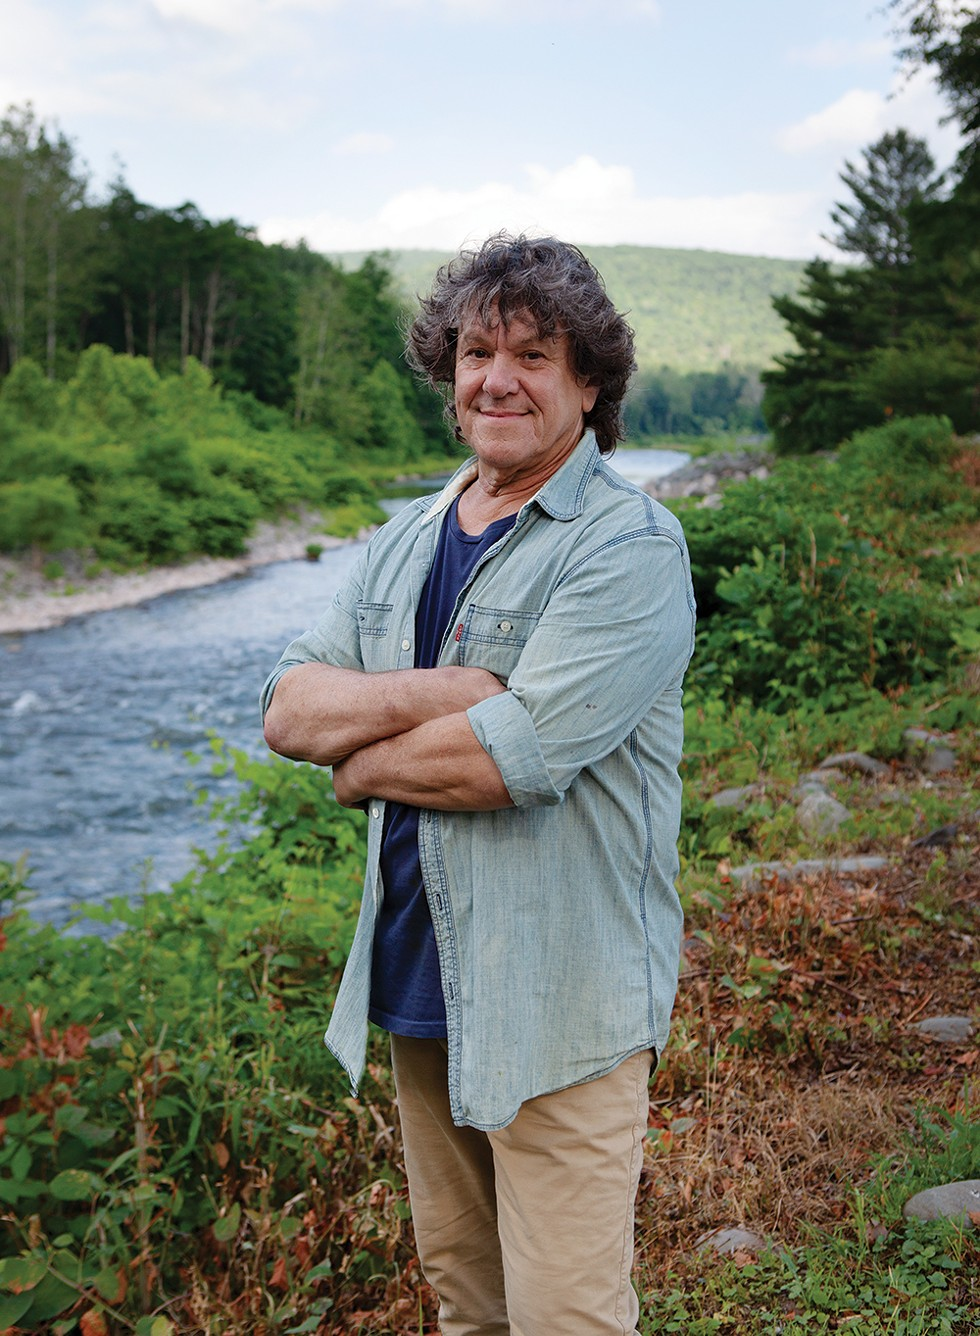 Michael Lang in July 2019. - PHOTO: FIONN REILLY